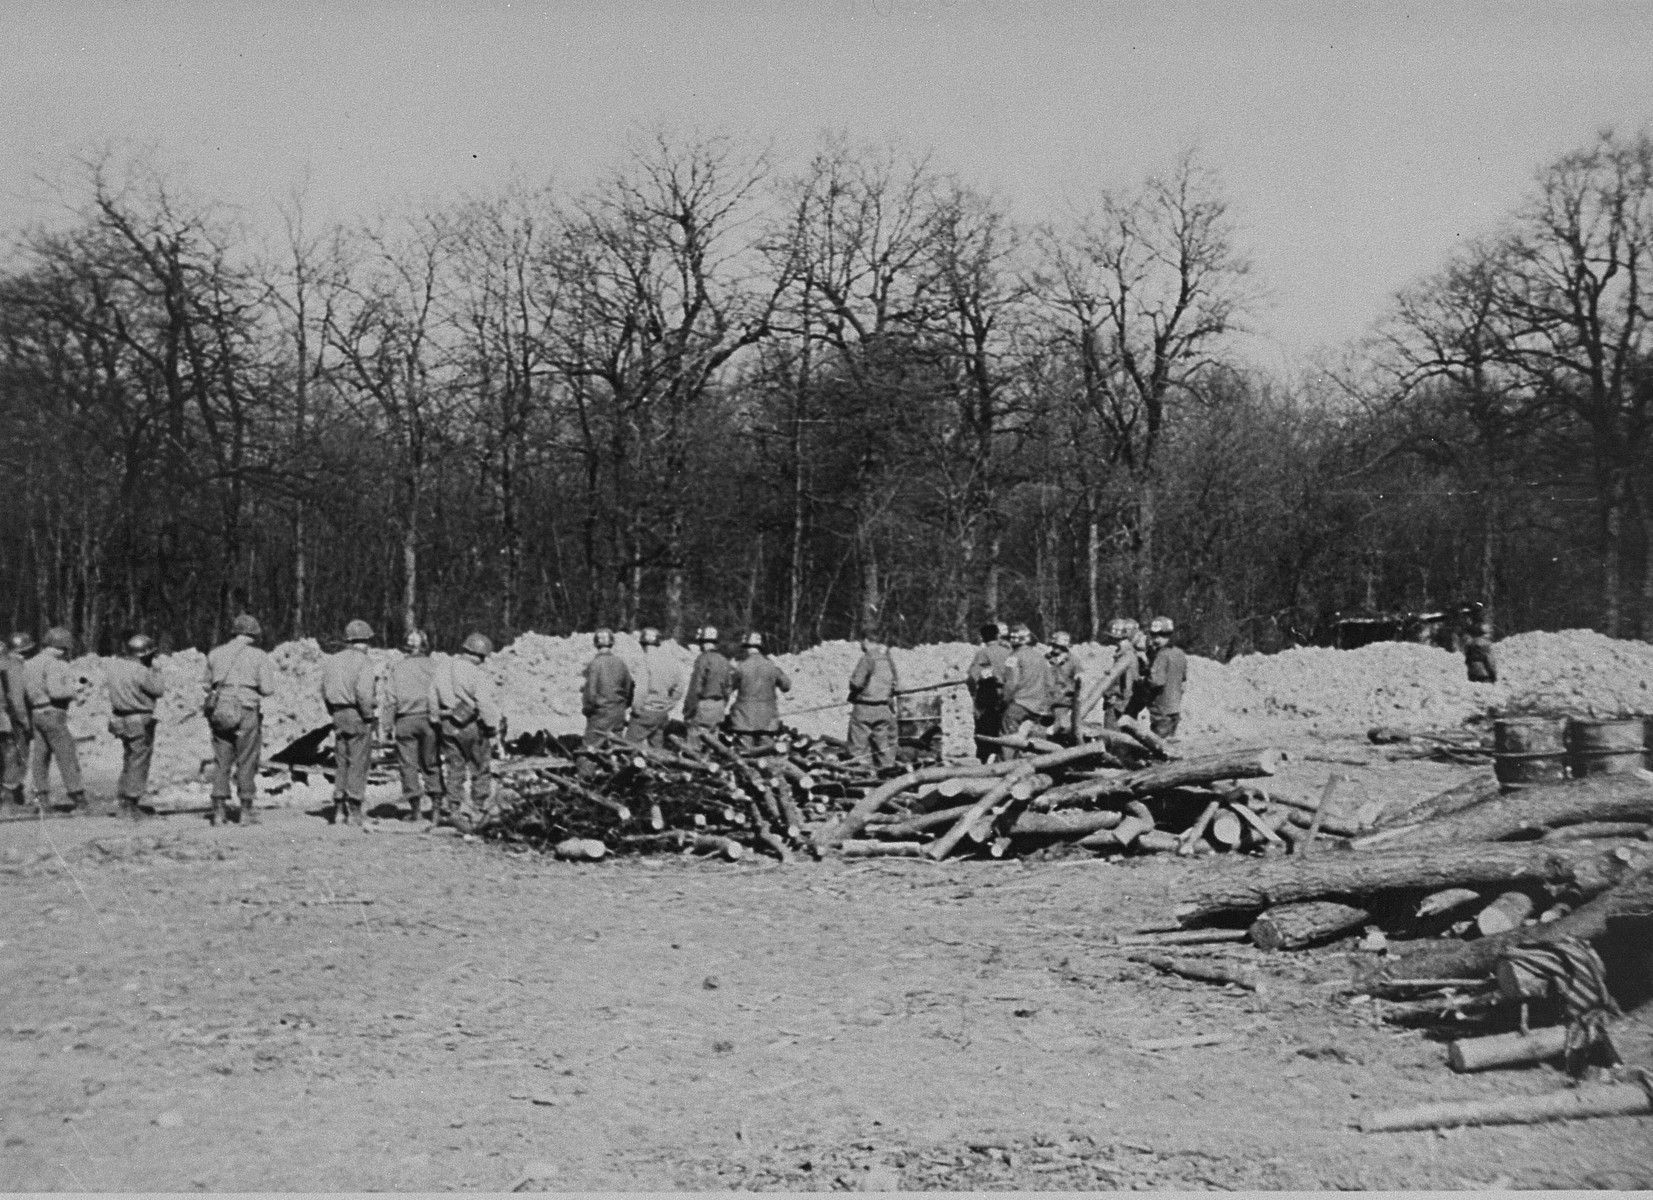 American soldiers examine the charred remains of corpses hastily burned during the evacuation of the Ohrdruf concentration camp.  The mounds of dirt in the distance mark a mass grave.